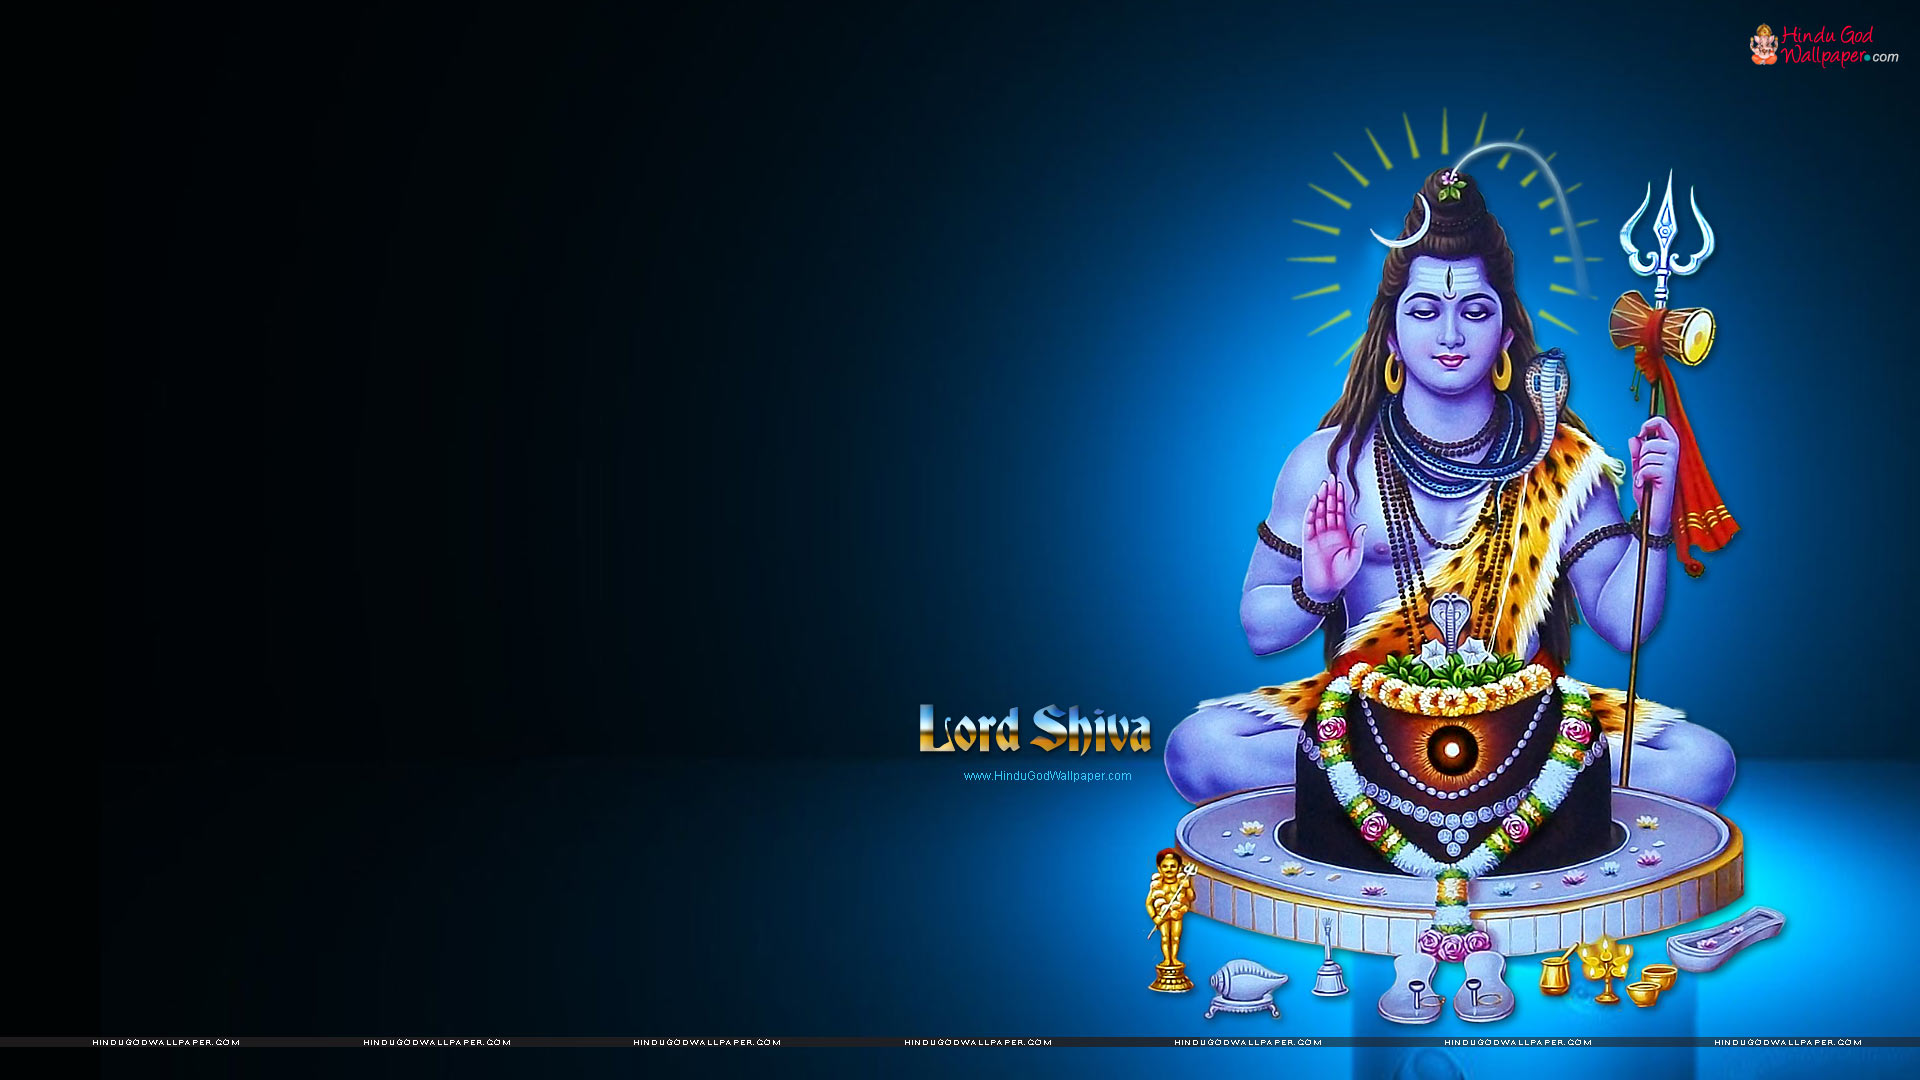 Lord Shiva HD wallpaper for download